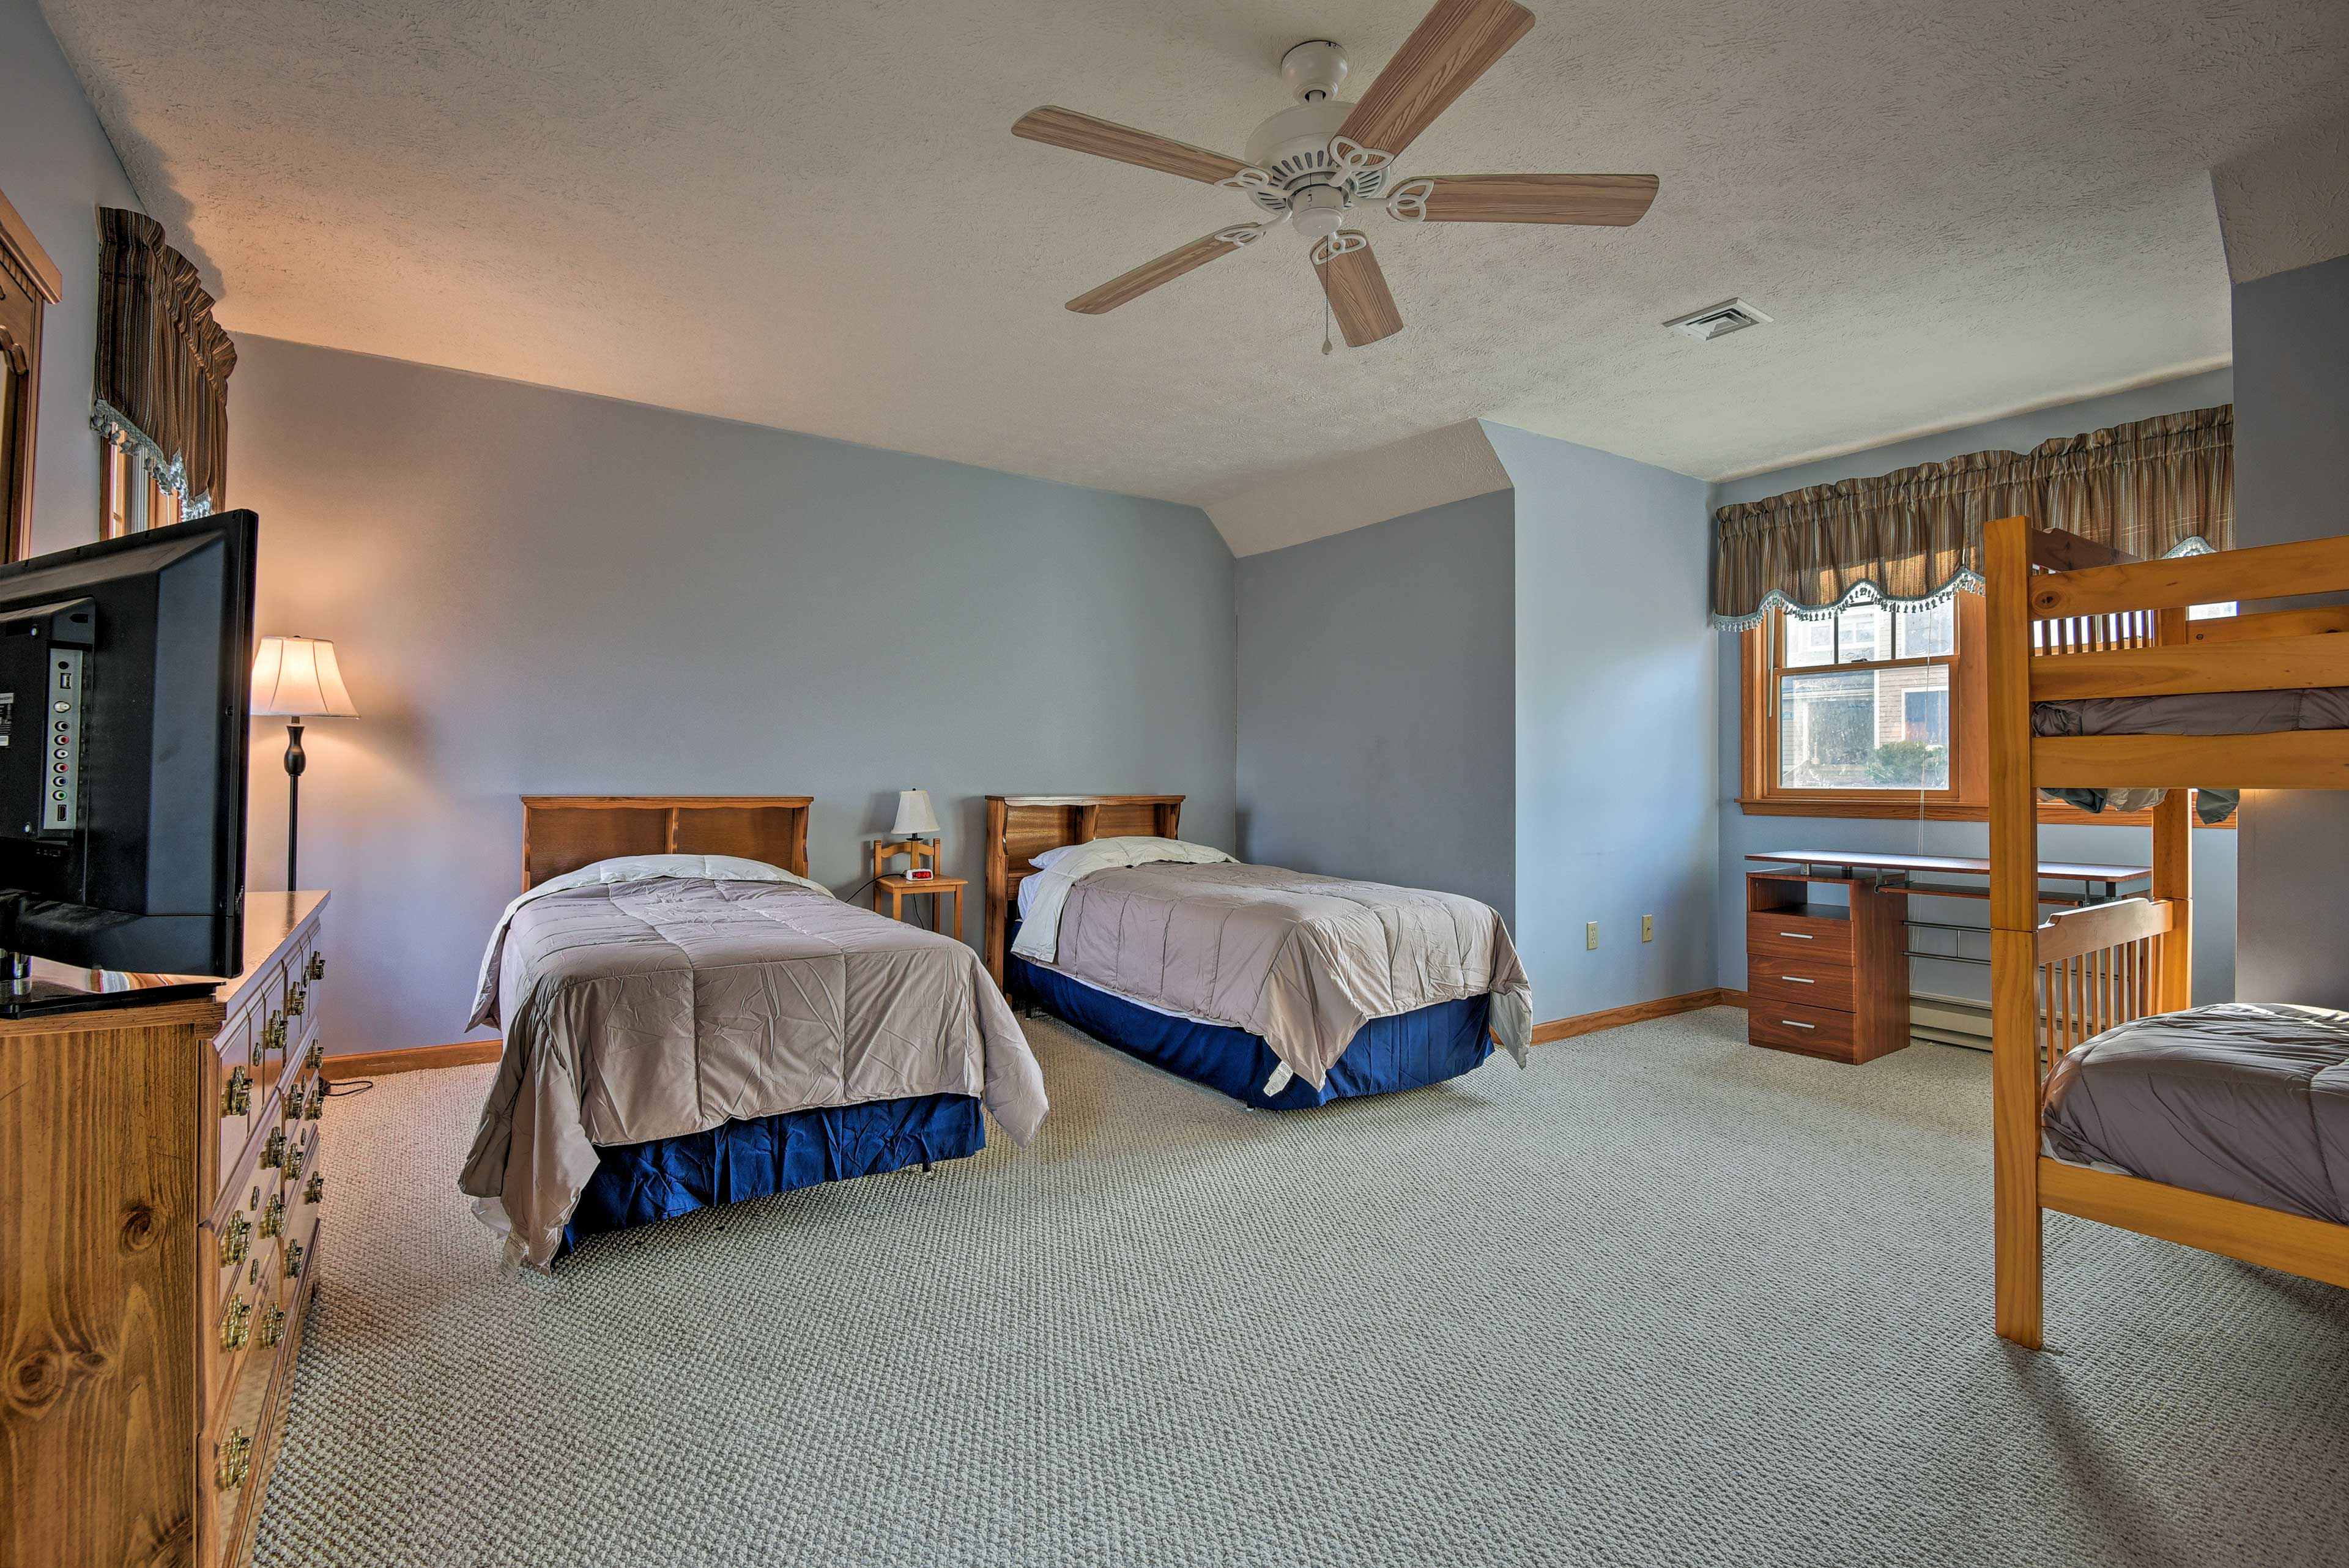 The loft has 2 twin beds and a twin-over-twin bunk bed.